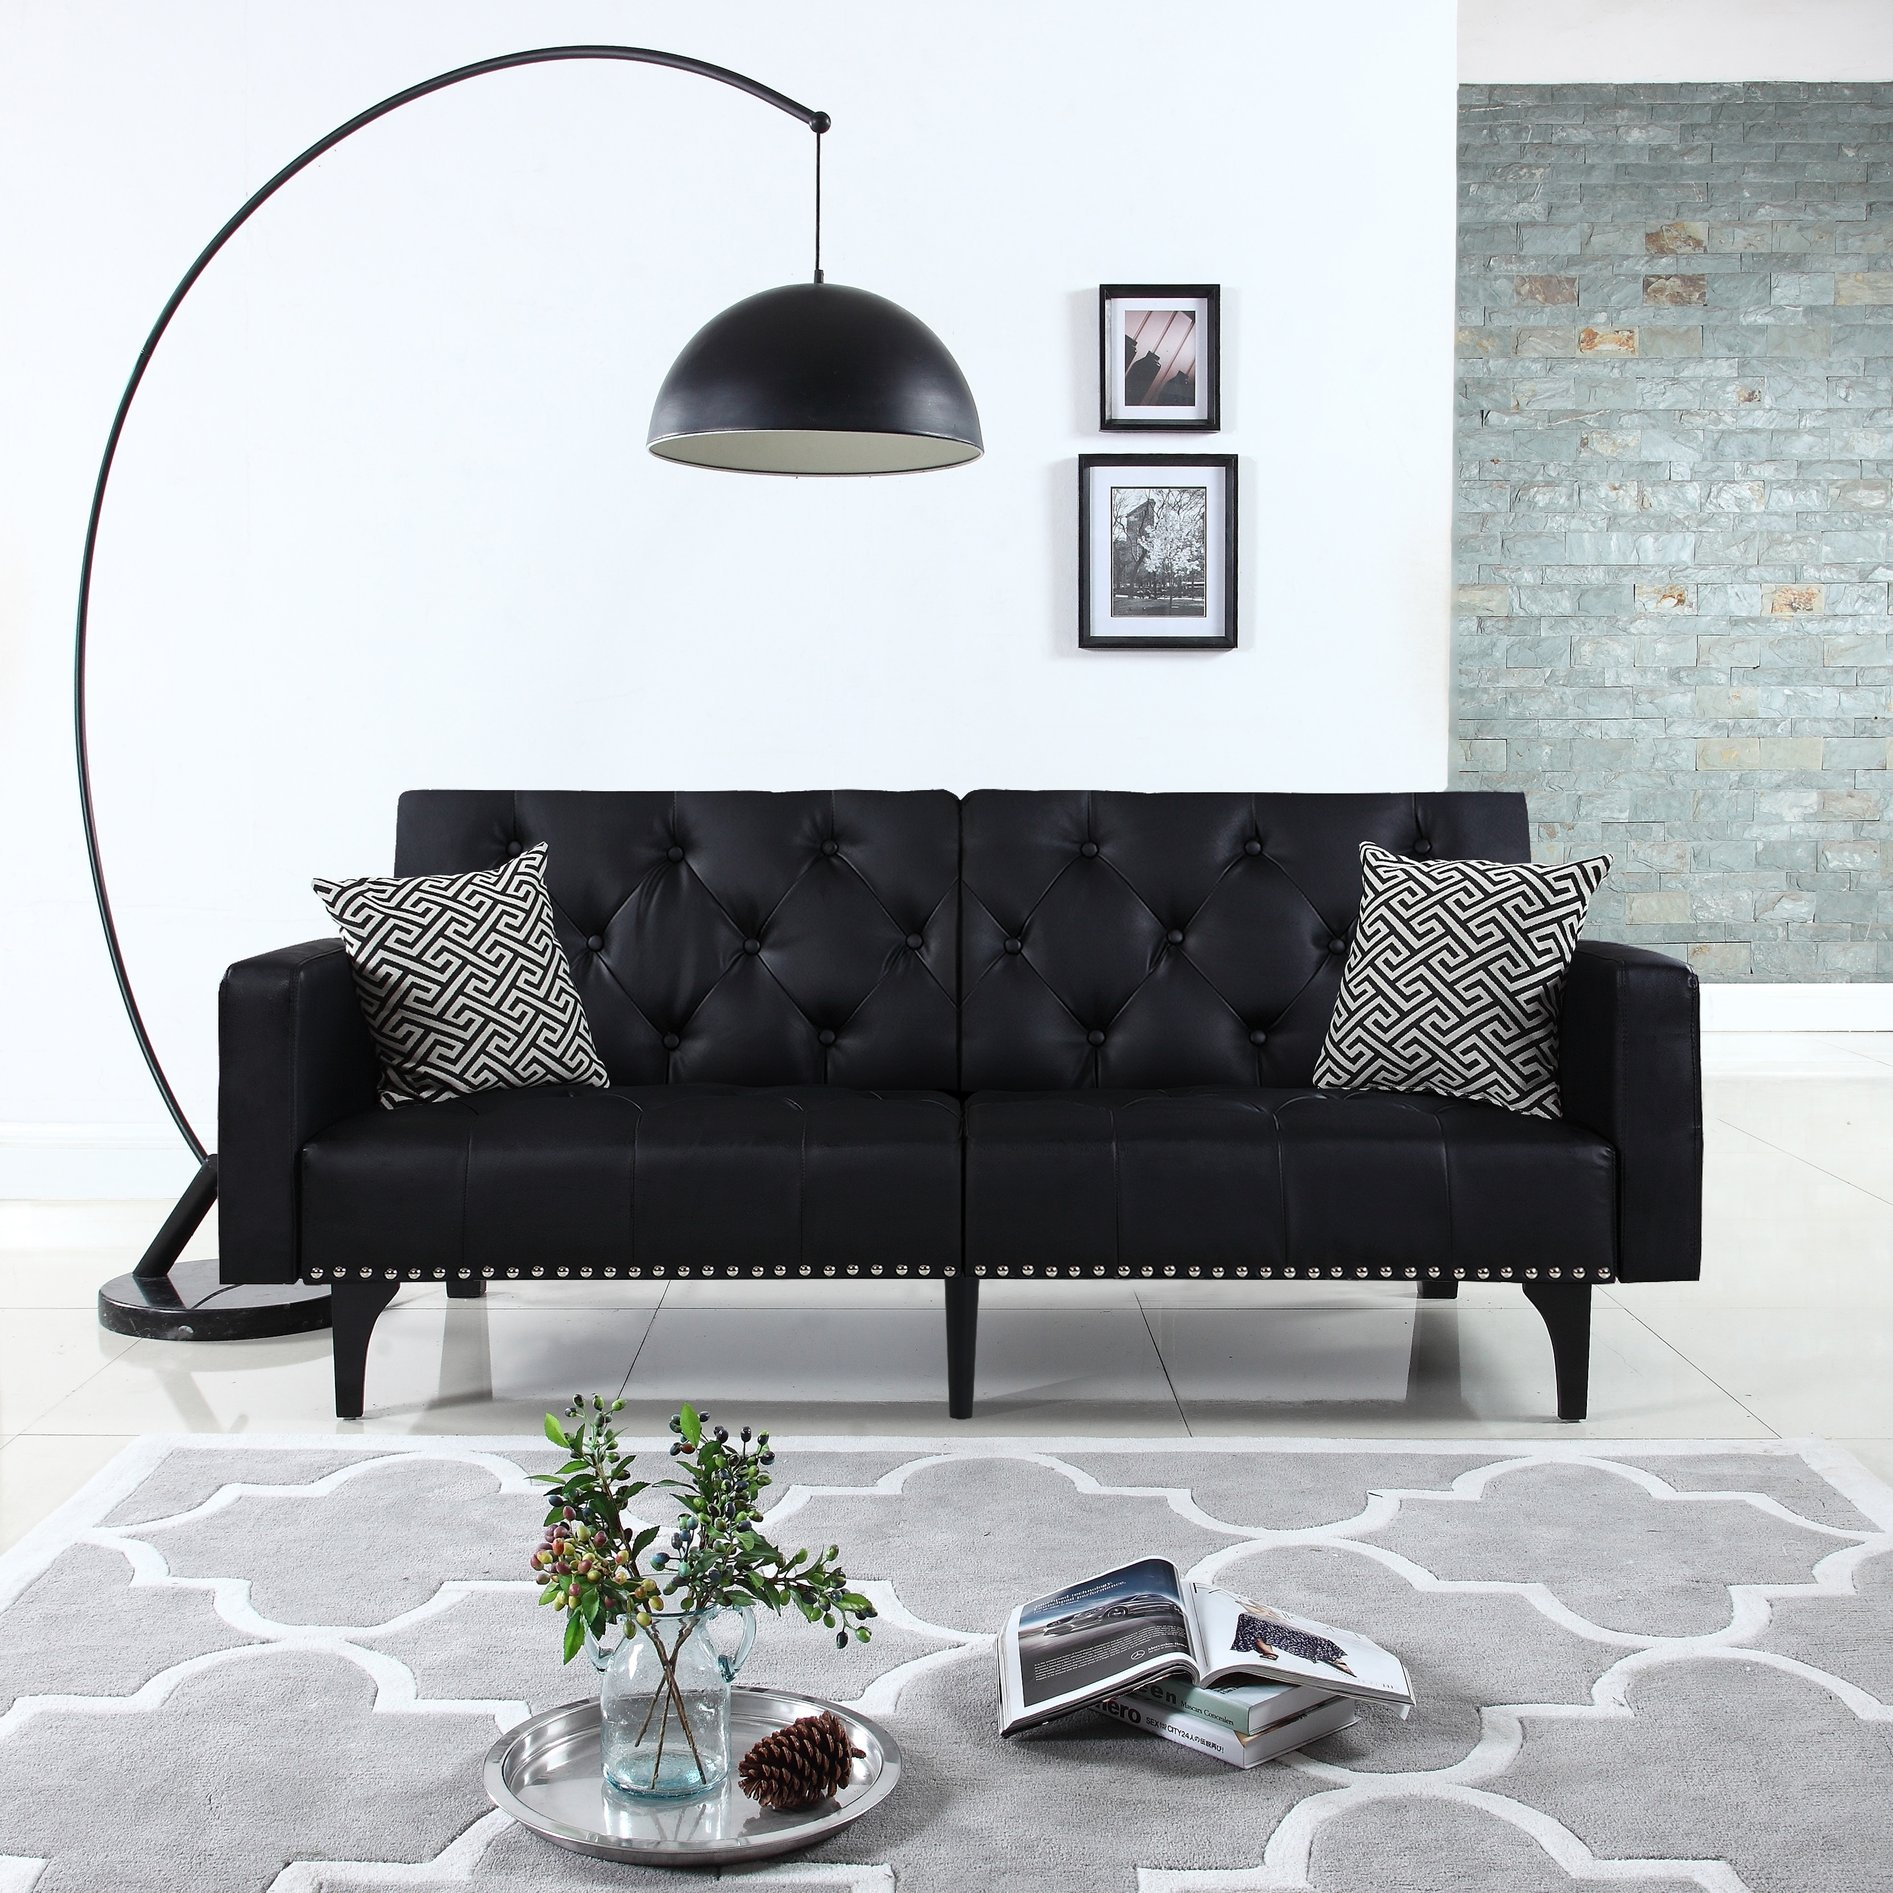 Incredible Details About Modern Tufted Bonded Leather Sleeper Futon Sofa With Nailhead Trim In White Evergreenethics Interior Chair Design Evergreenethicsorg